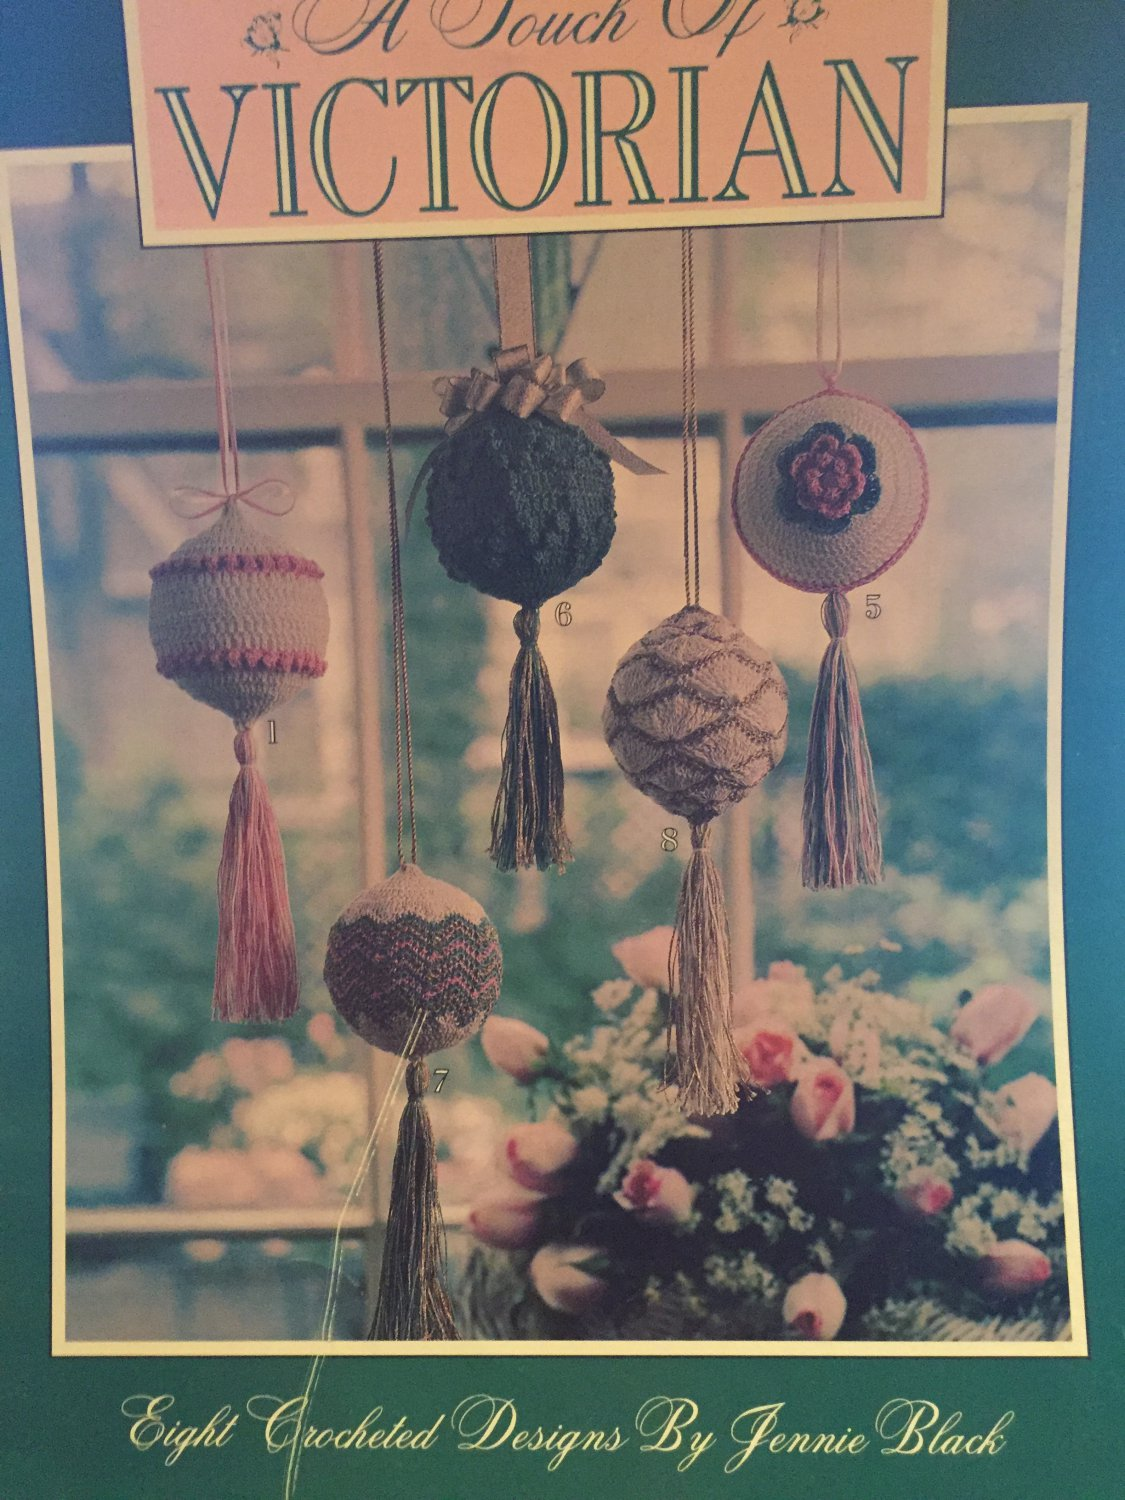 Victorian Ornaments thread crochet pattern Leisure Arts 2255 ¨A Touch of Victorian¨